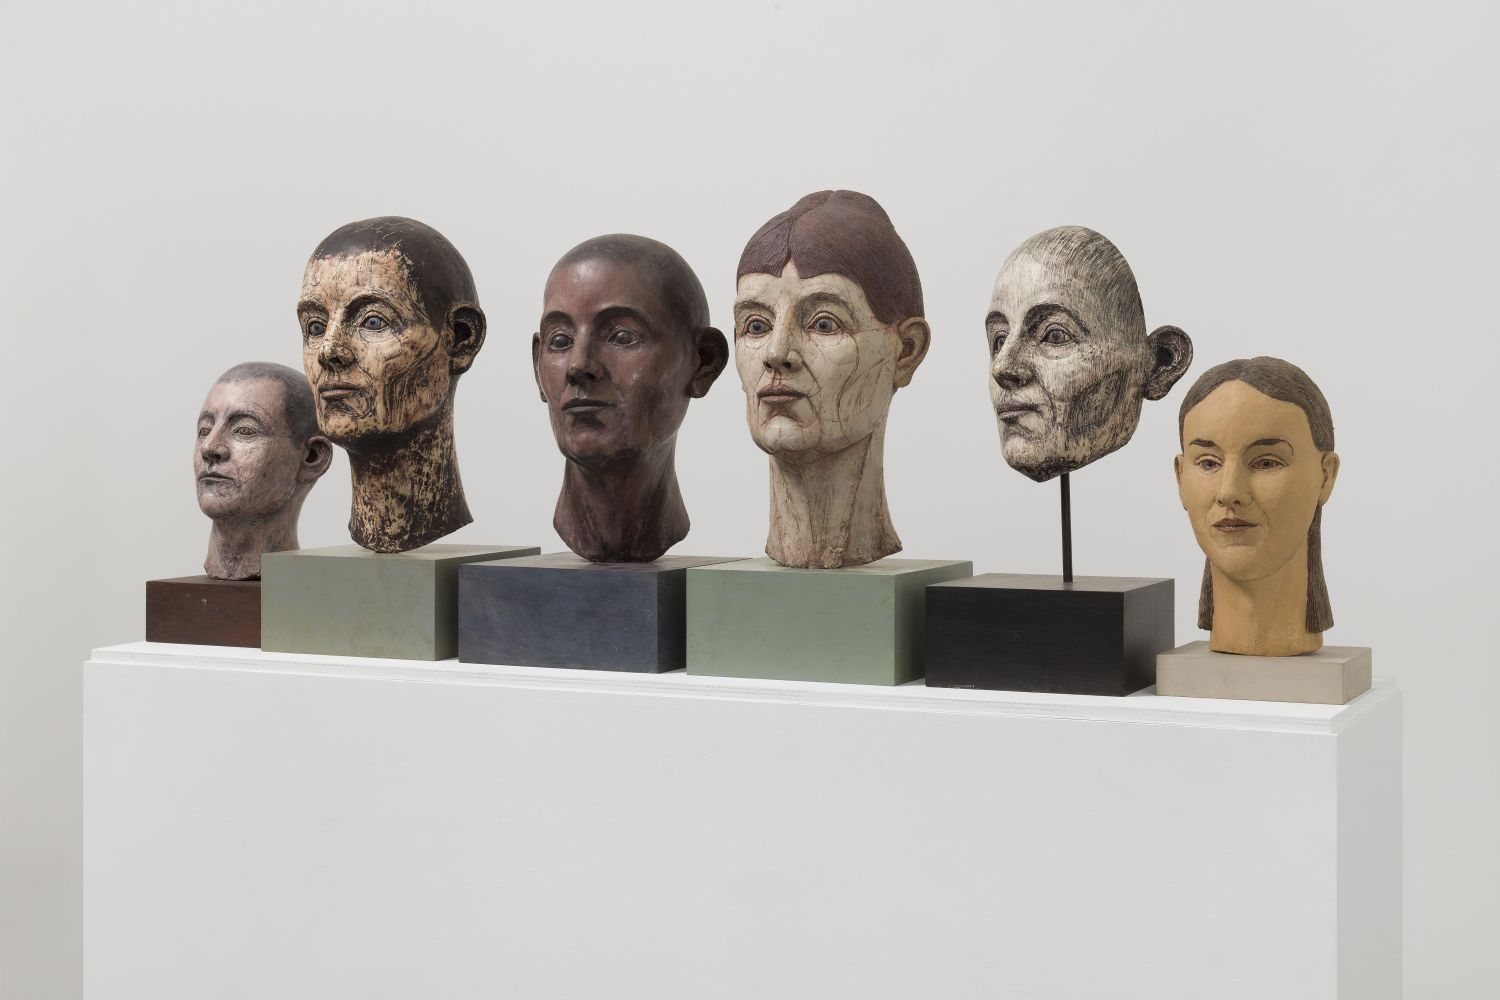 Side-view photograph featuring group of six different sculptural heads ranging in size, gender and color